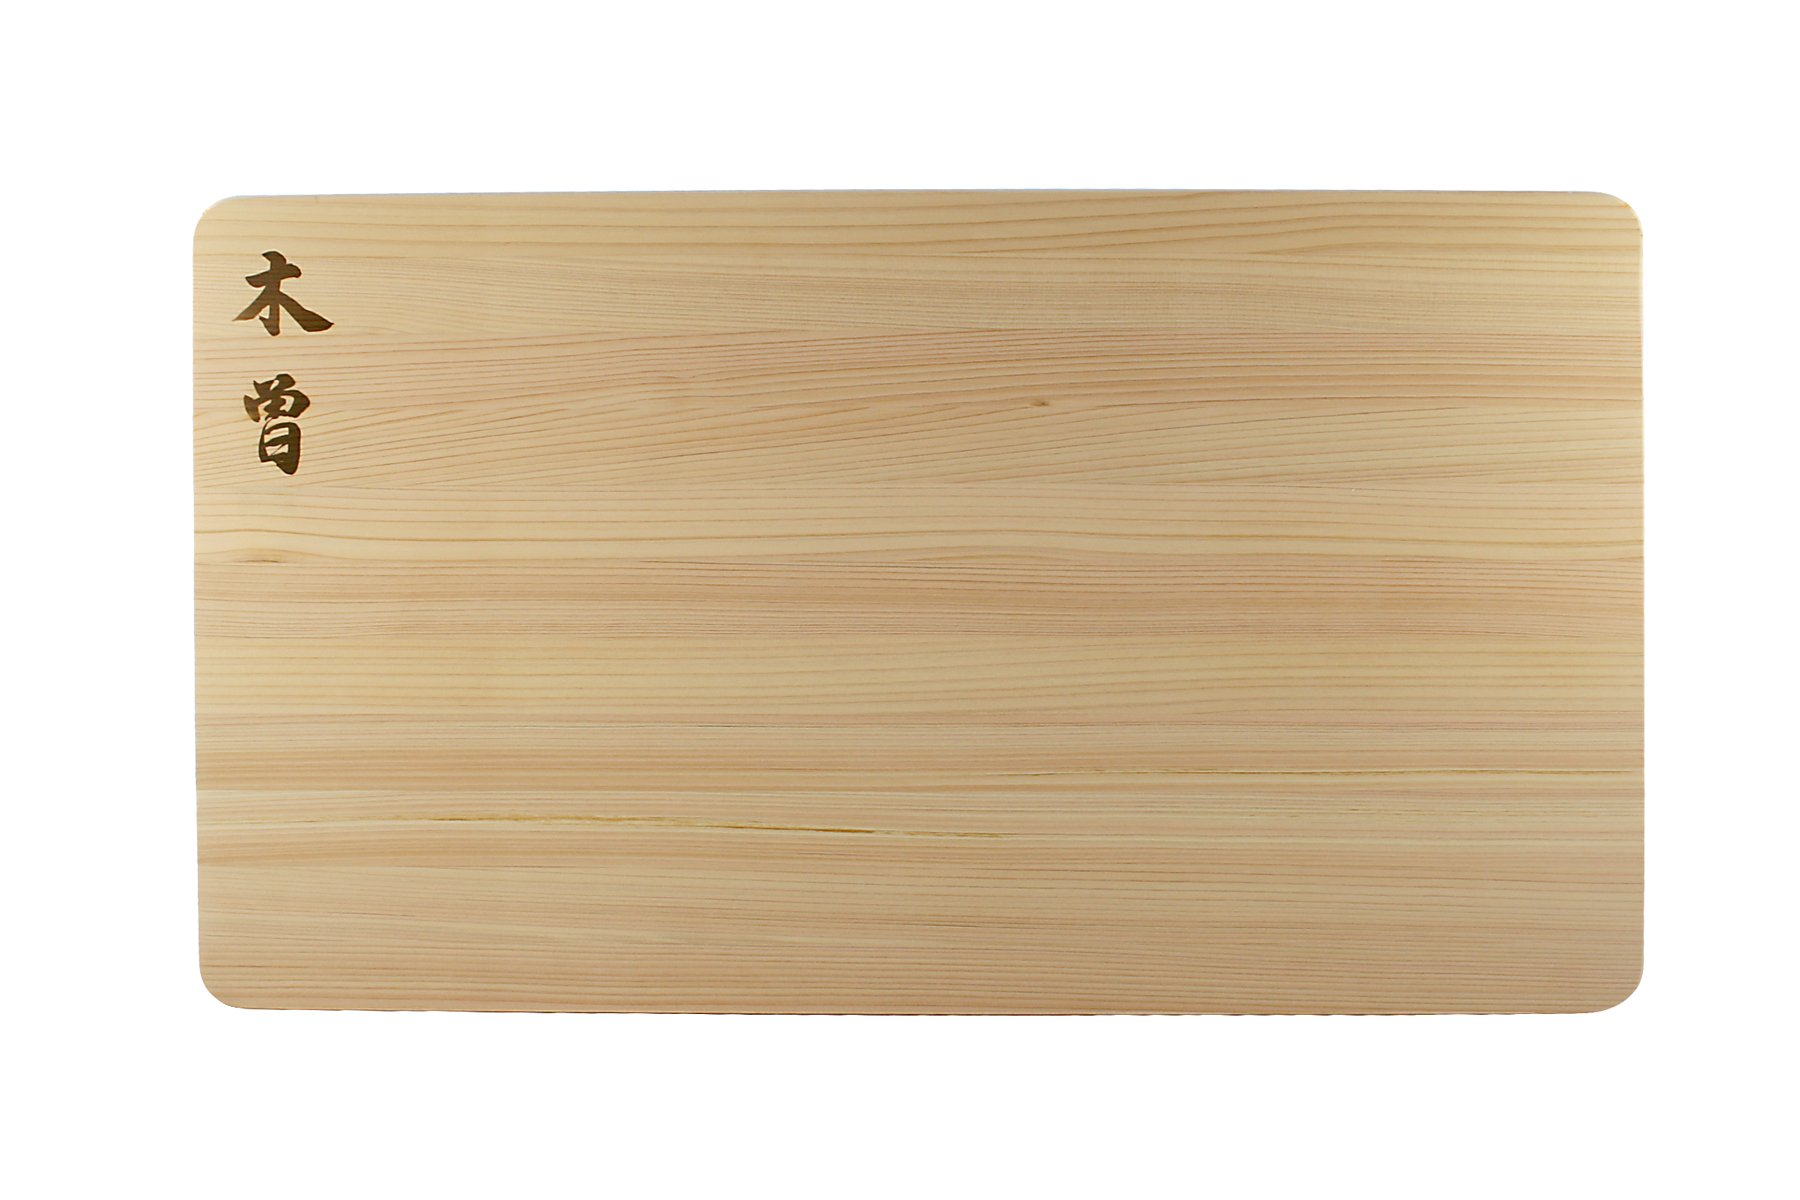 Kiso Hinoki Cutting Boards, Made in Japan - Authentic Japanese Cypress (20 x 12 x 1 Inch)